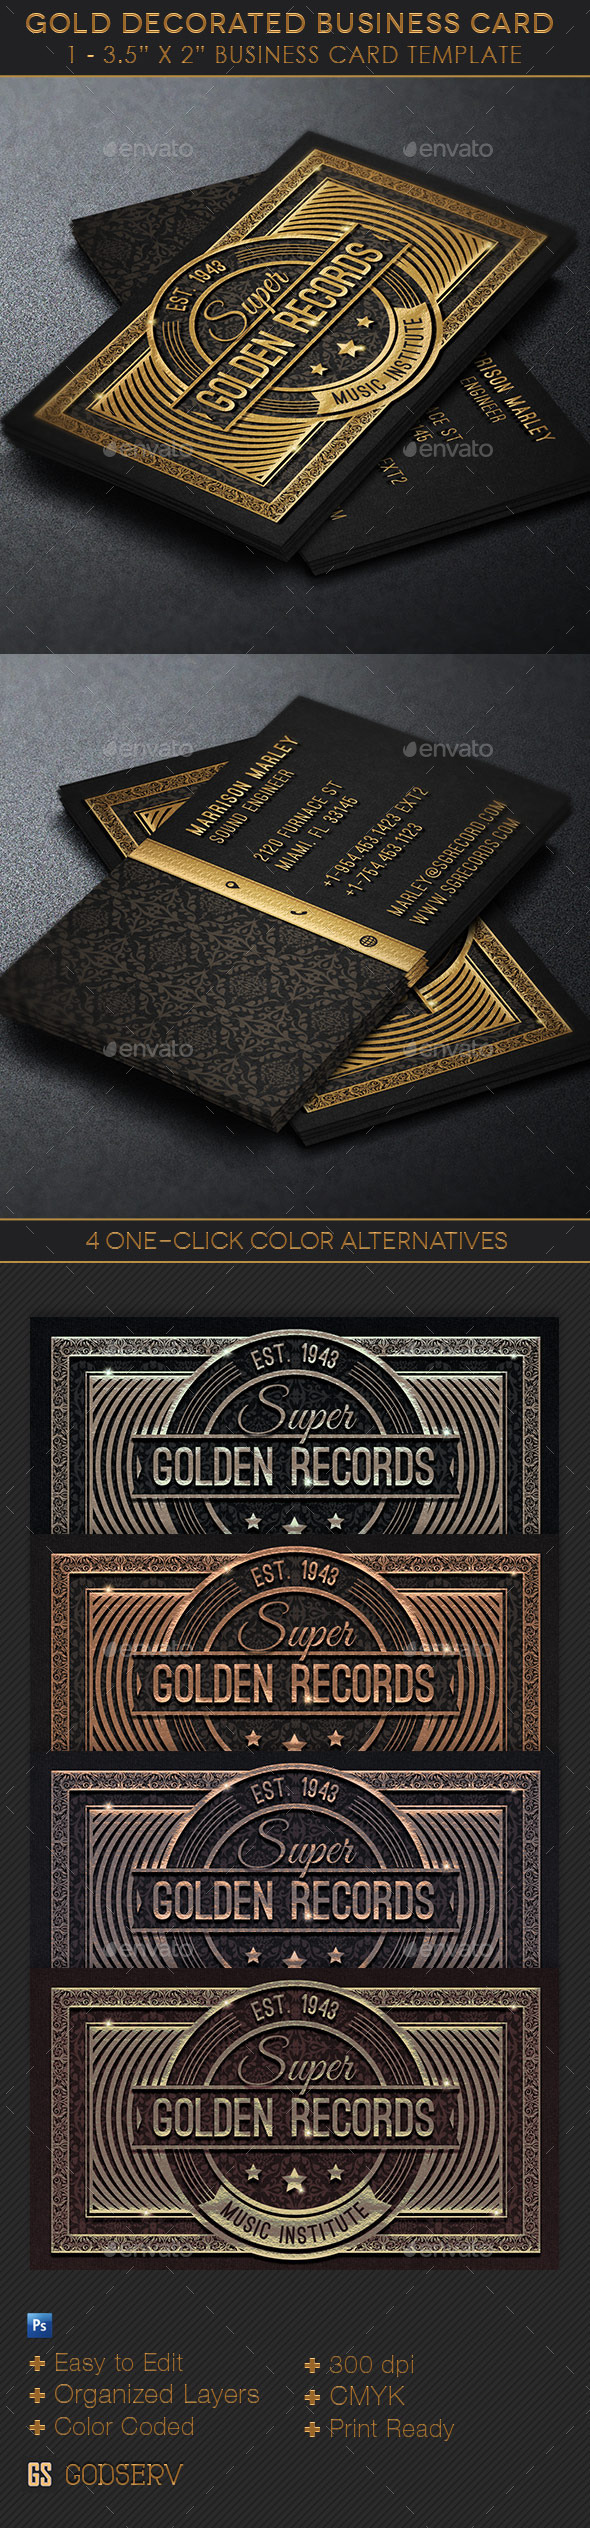 GraphicRiver Gold Decorated Business Card Template 11045306